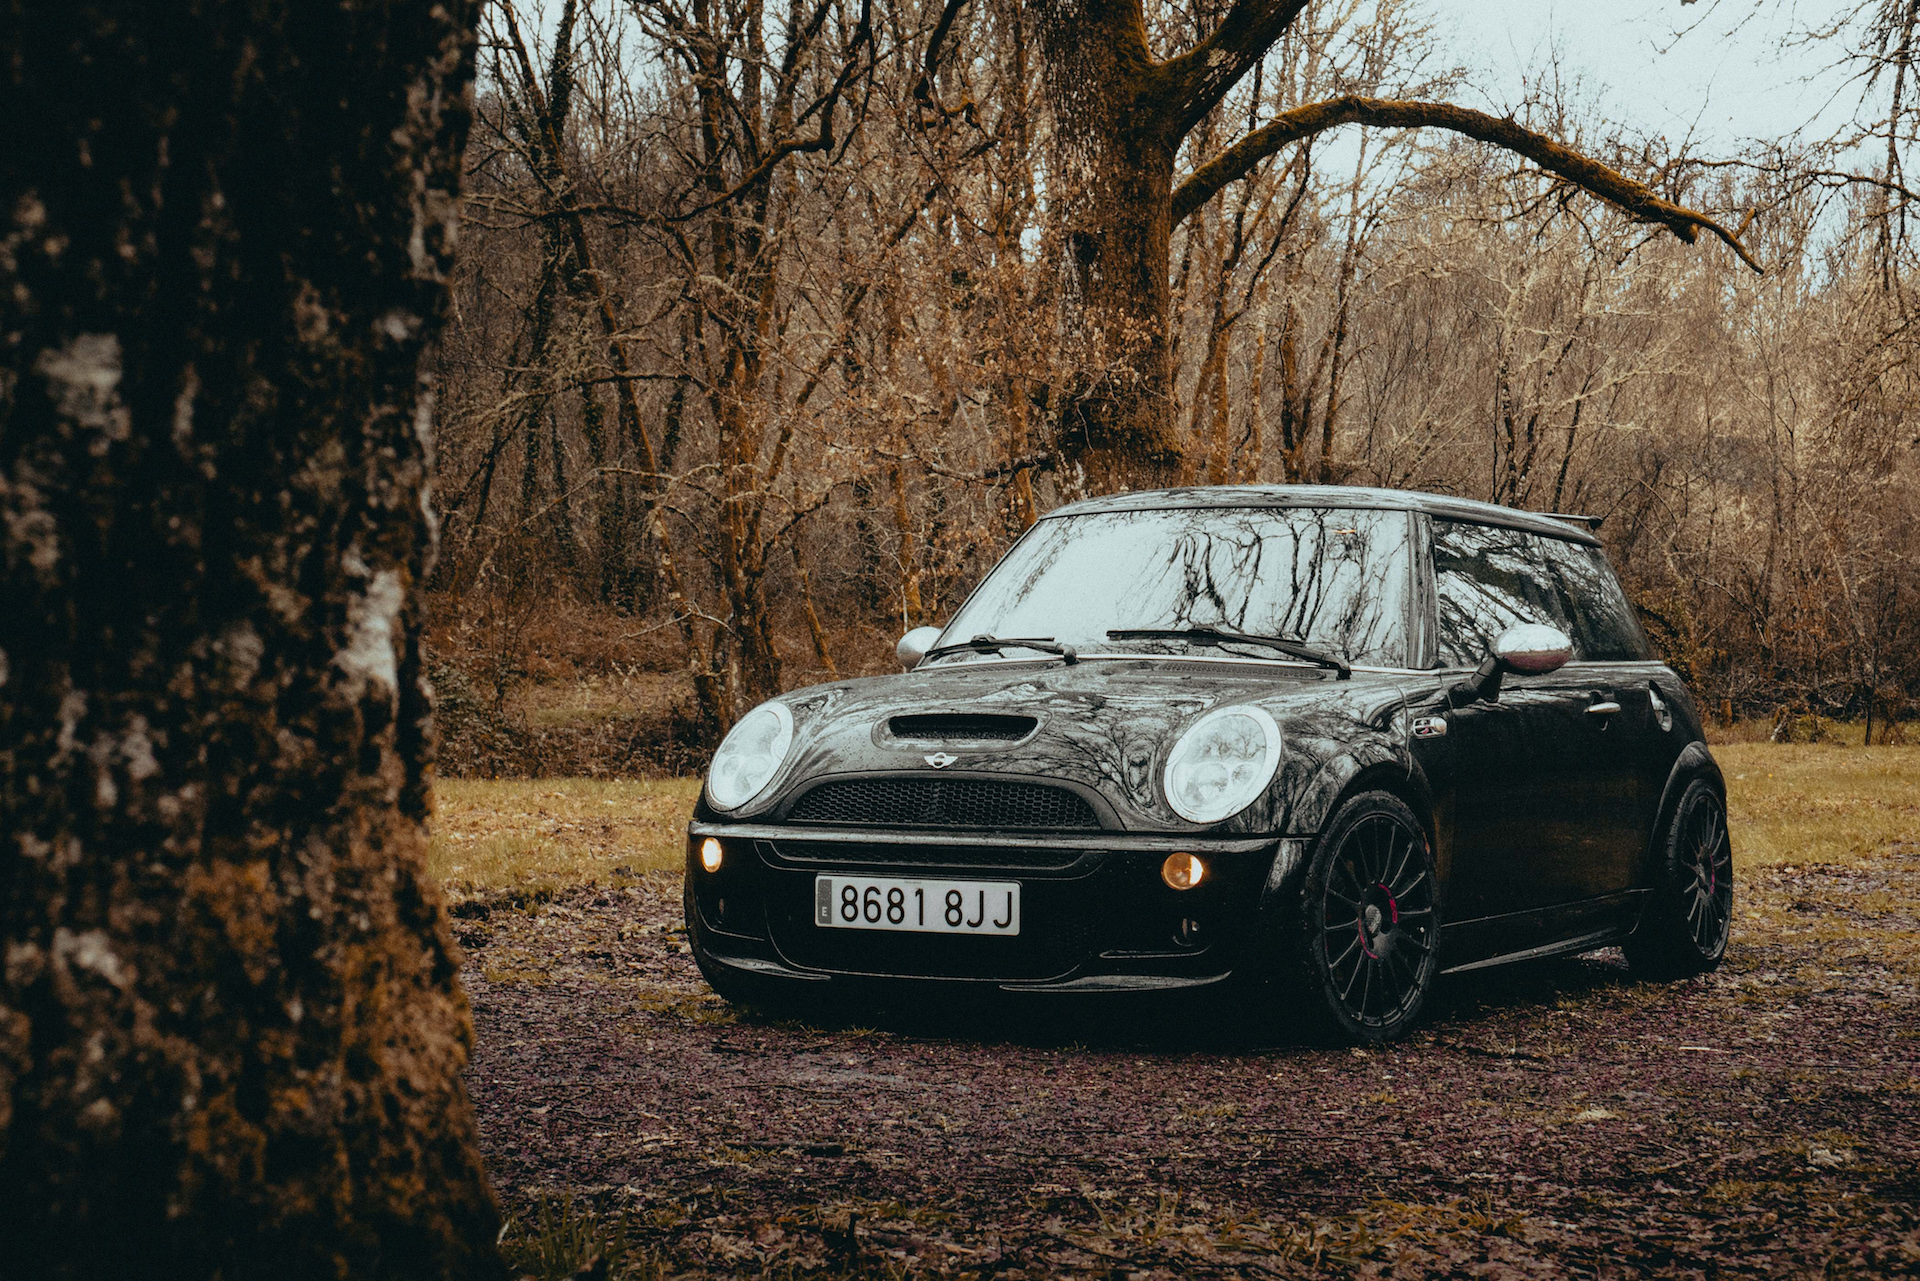 004 BLACK STUDIO MINI R53.jpg